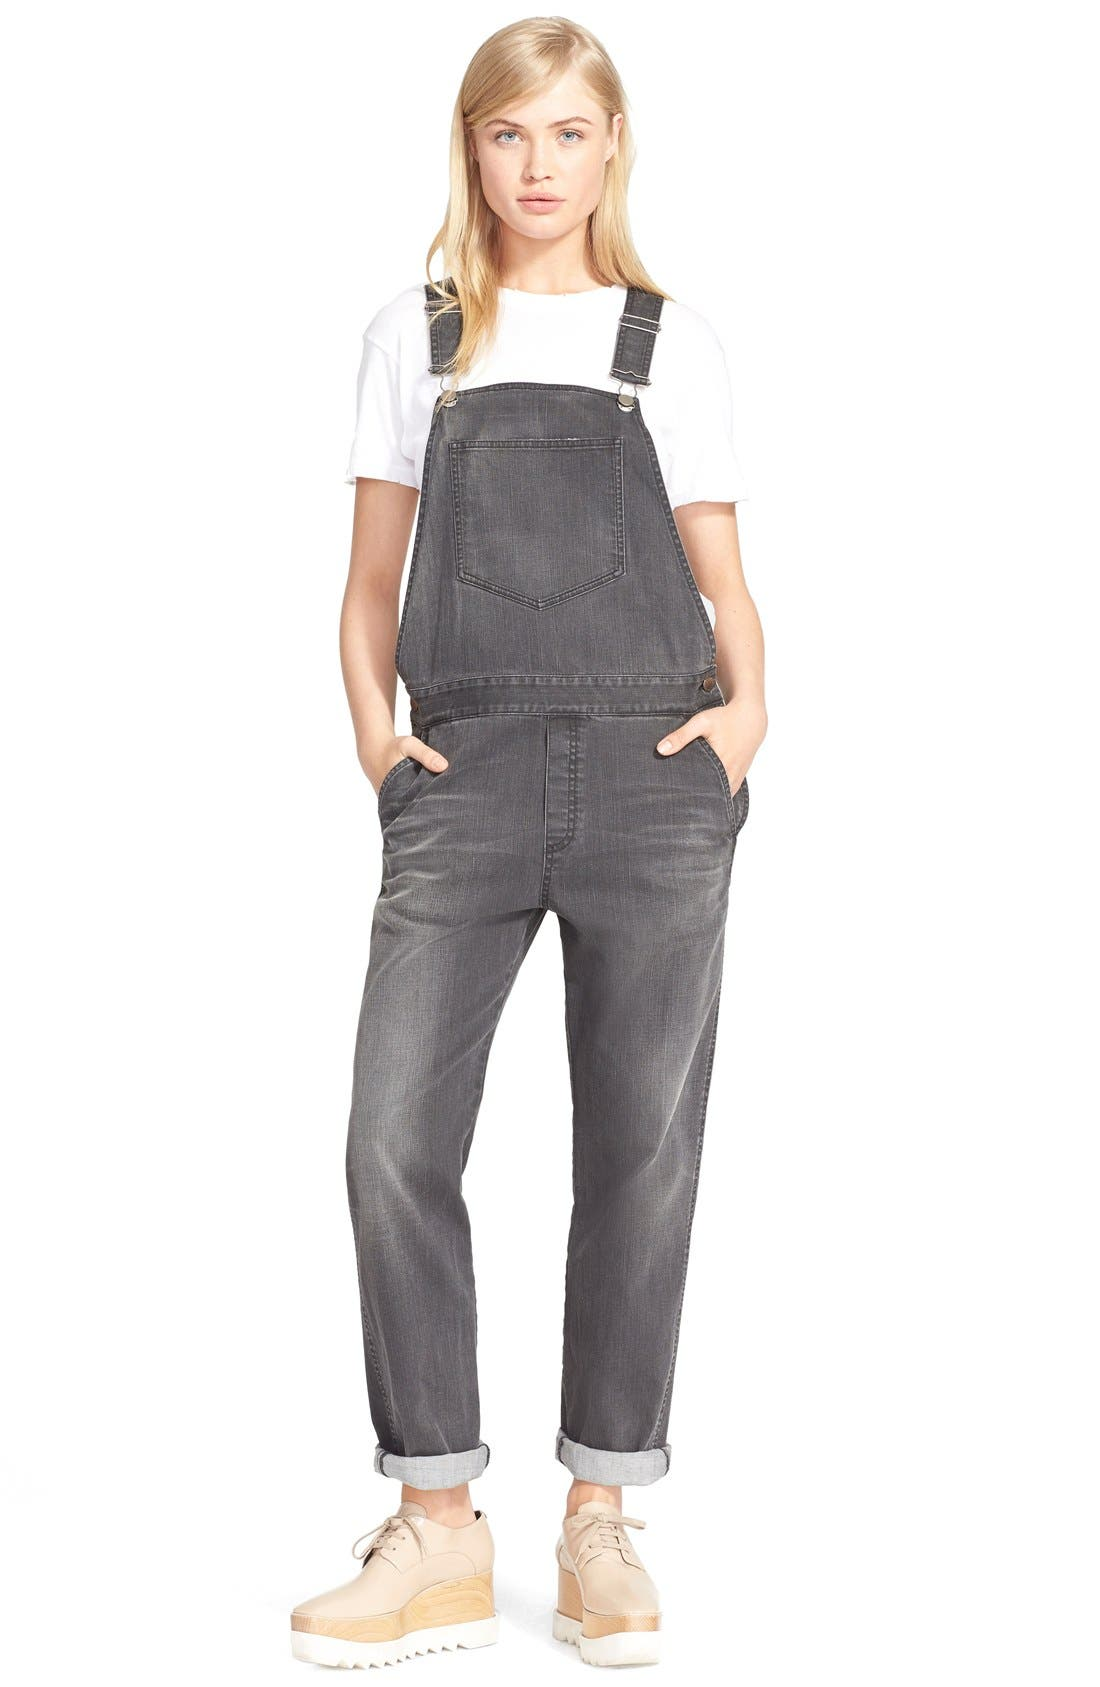 Alternate Image 1 Selected - Stella McCartney 'The Skinny' Boyfriend Dungarees